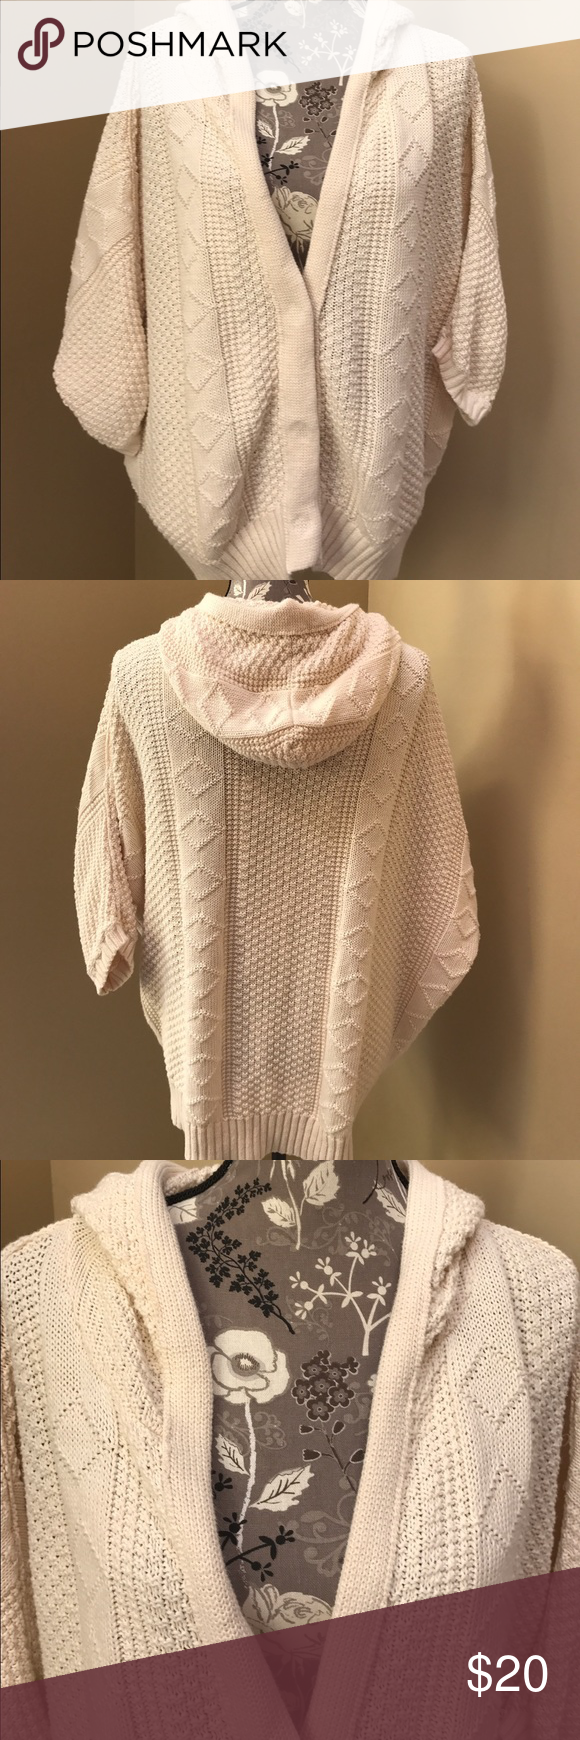 Free People knit sweater Free People cream colored knit sweater ...